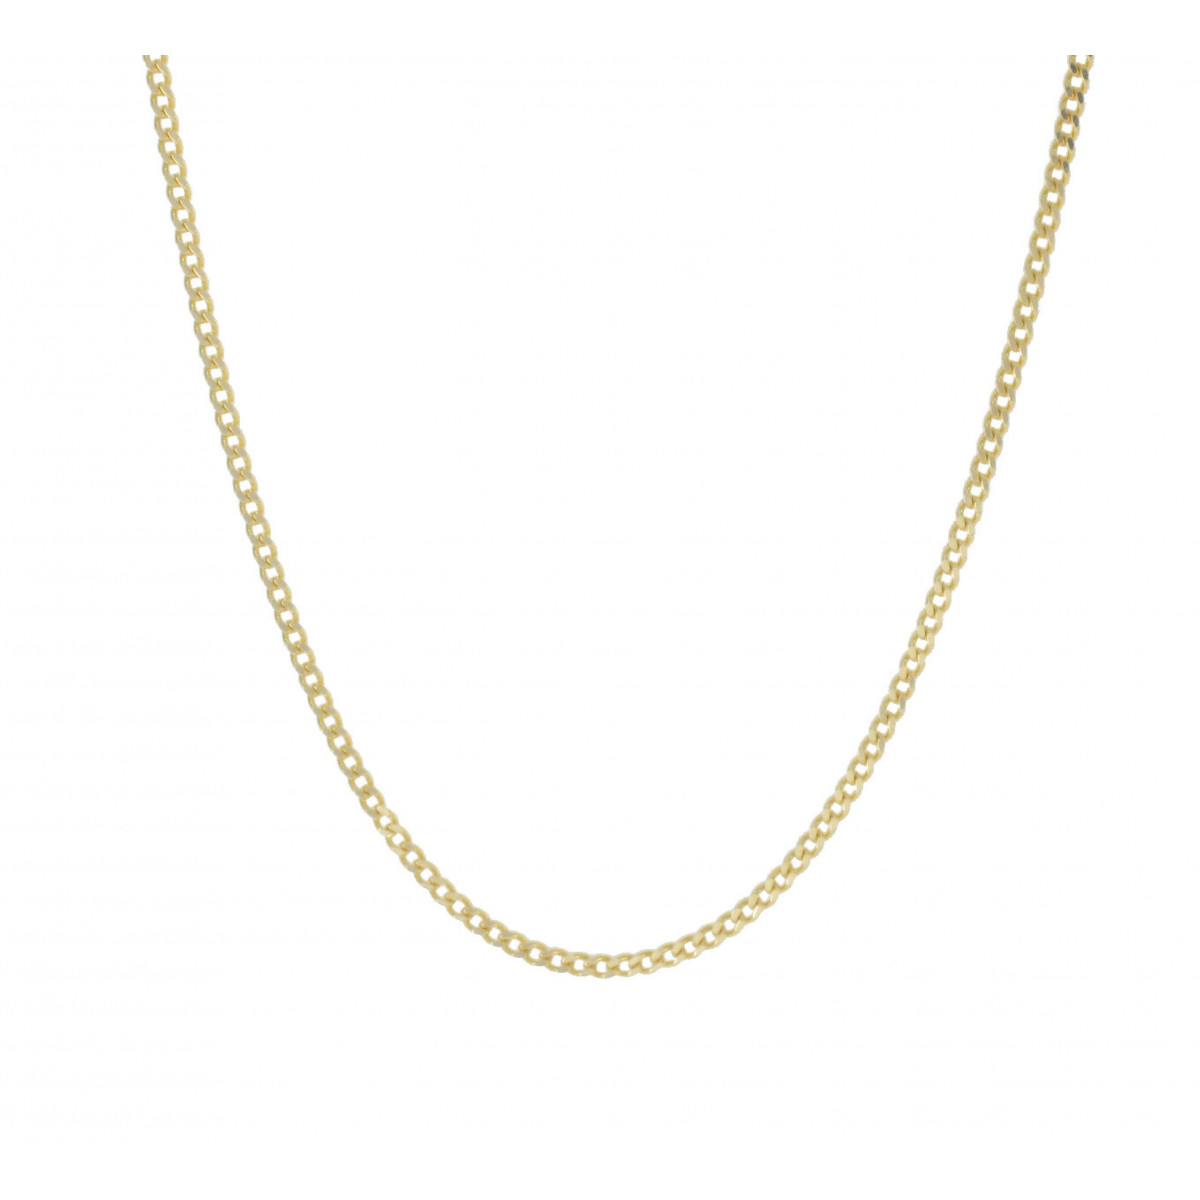 GOLD CHAIN 50 CENTIMETERS